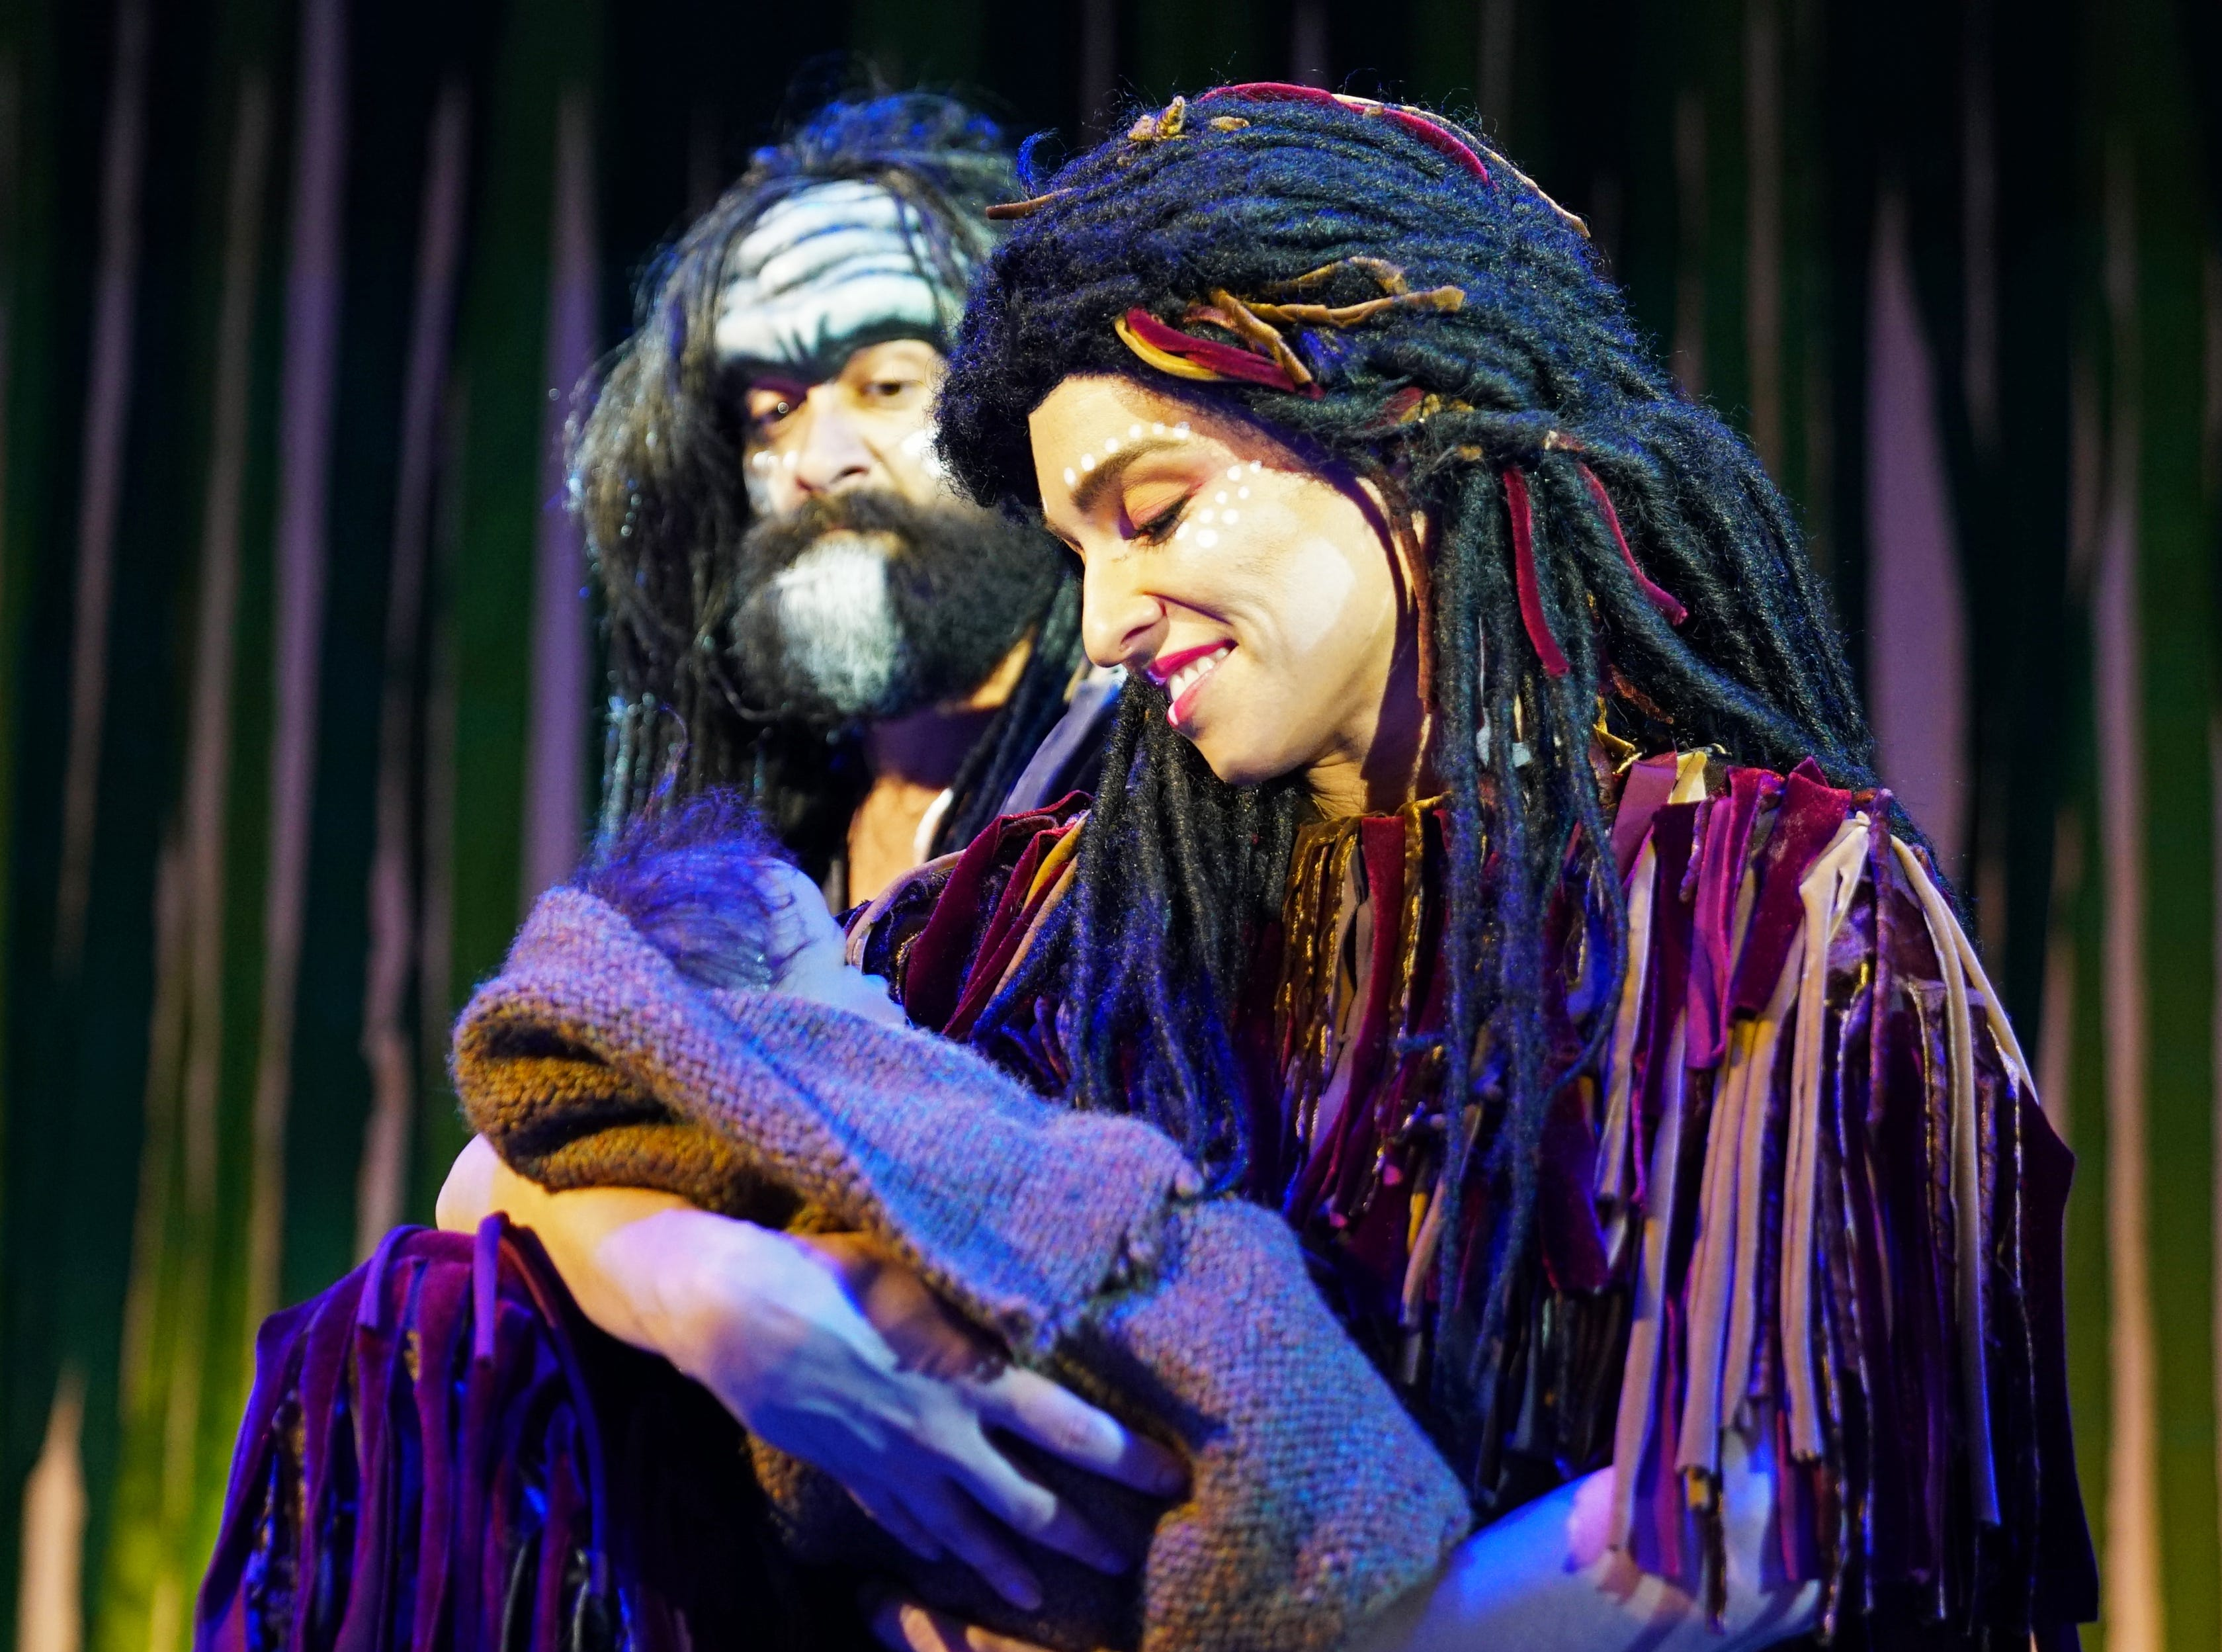 """Josh Doyle plays """"Kerchek"""" and Mahalia Gronigan plays """"Kala"""" in """"Tarzan,"""" the stage musical based on the Disney film on stage at the Henegar Center in Melbourne through March 24th. For tickets or more information, visit henegar.org"""